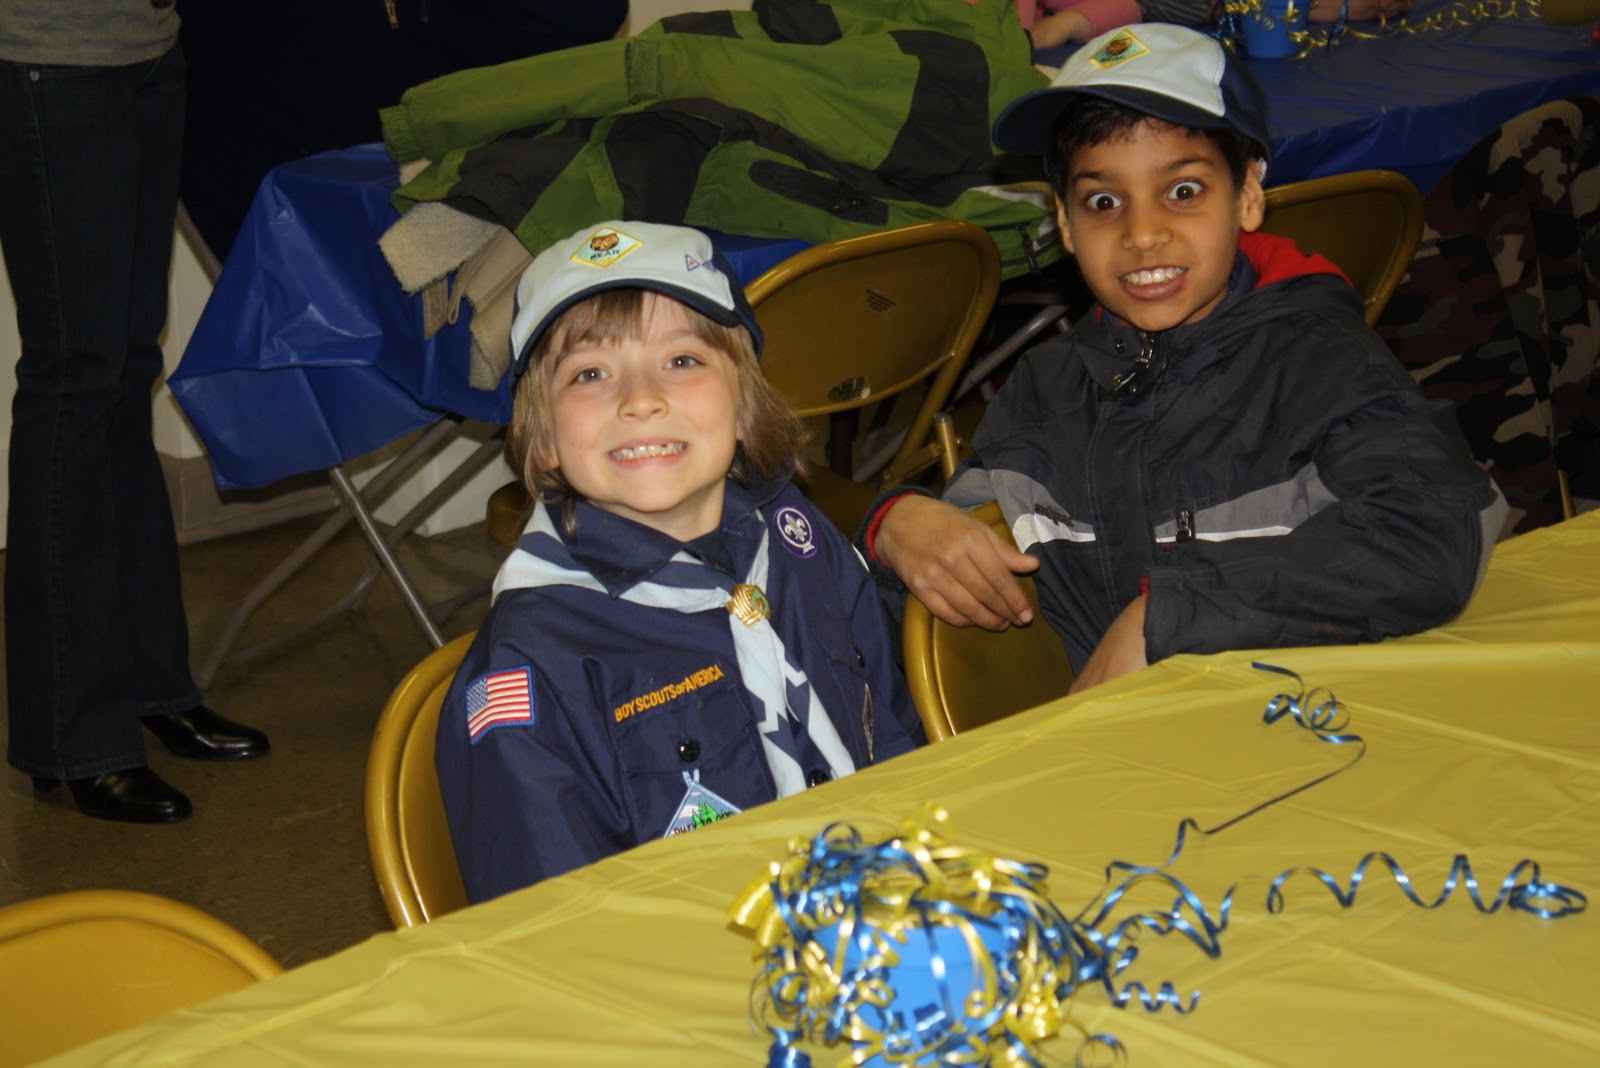 Our Life With 3 Guys And A Doll Cub Scouts Blue And Gold